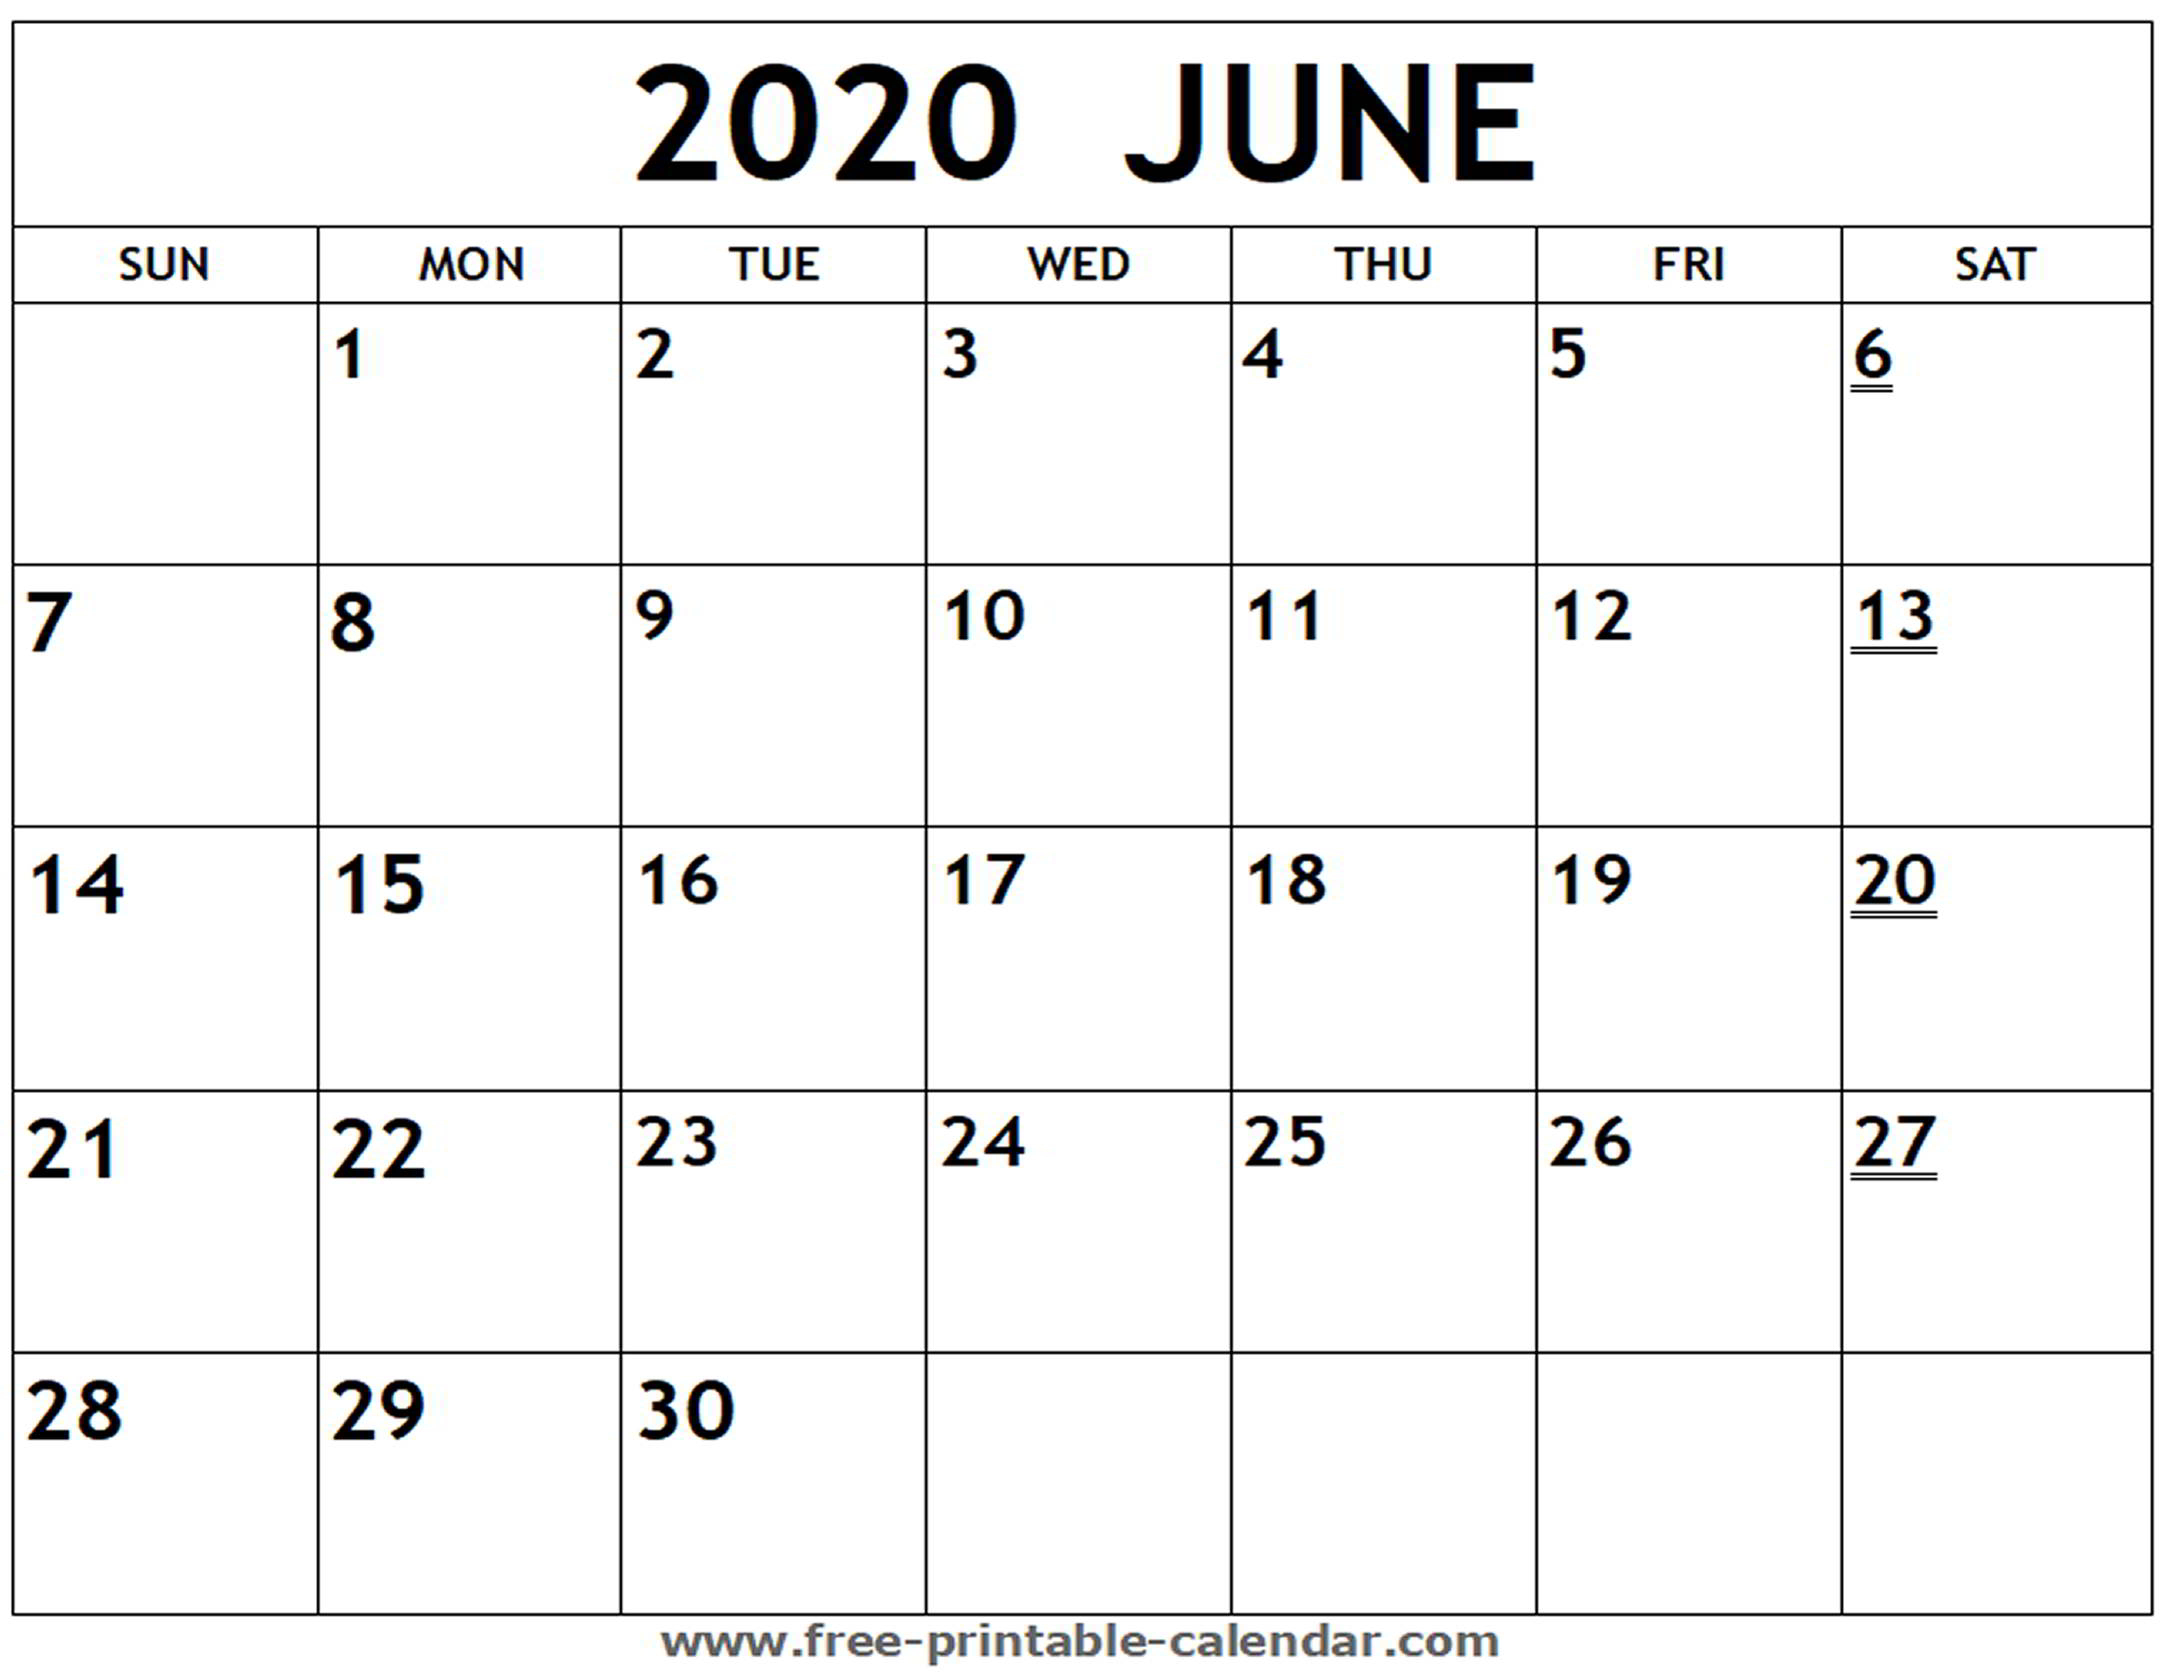 Blank Calendar For June 2020 - Wpa.wpart.co